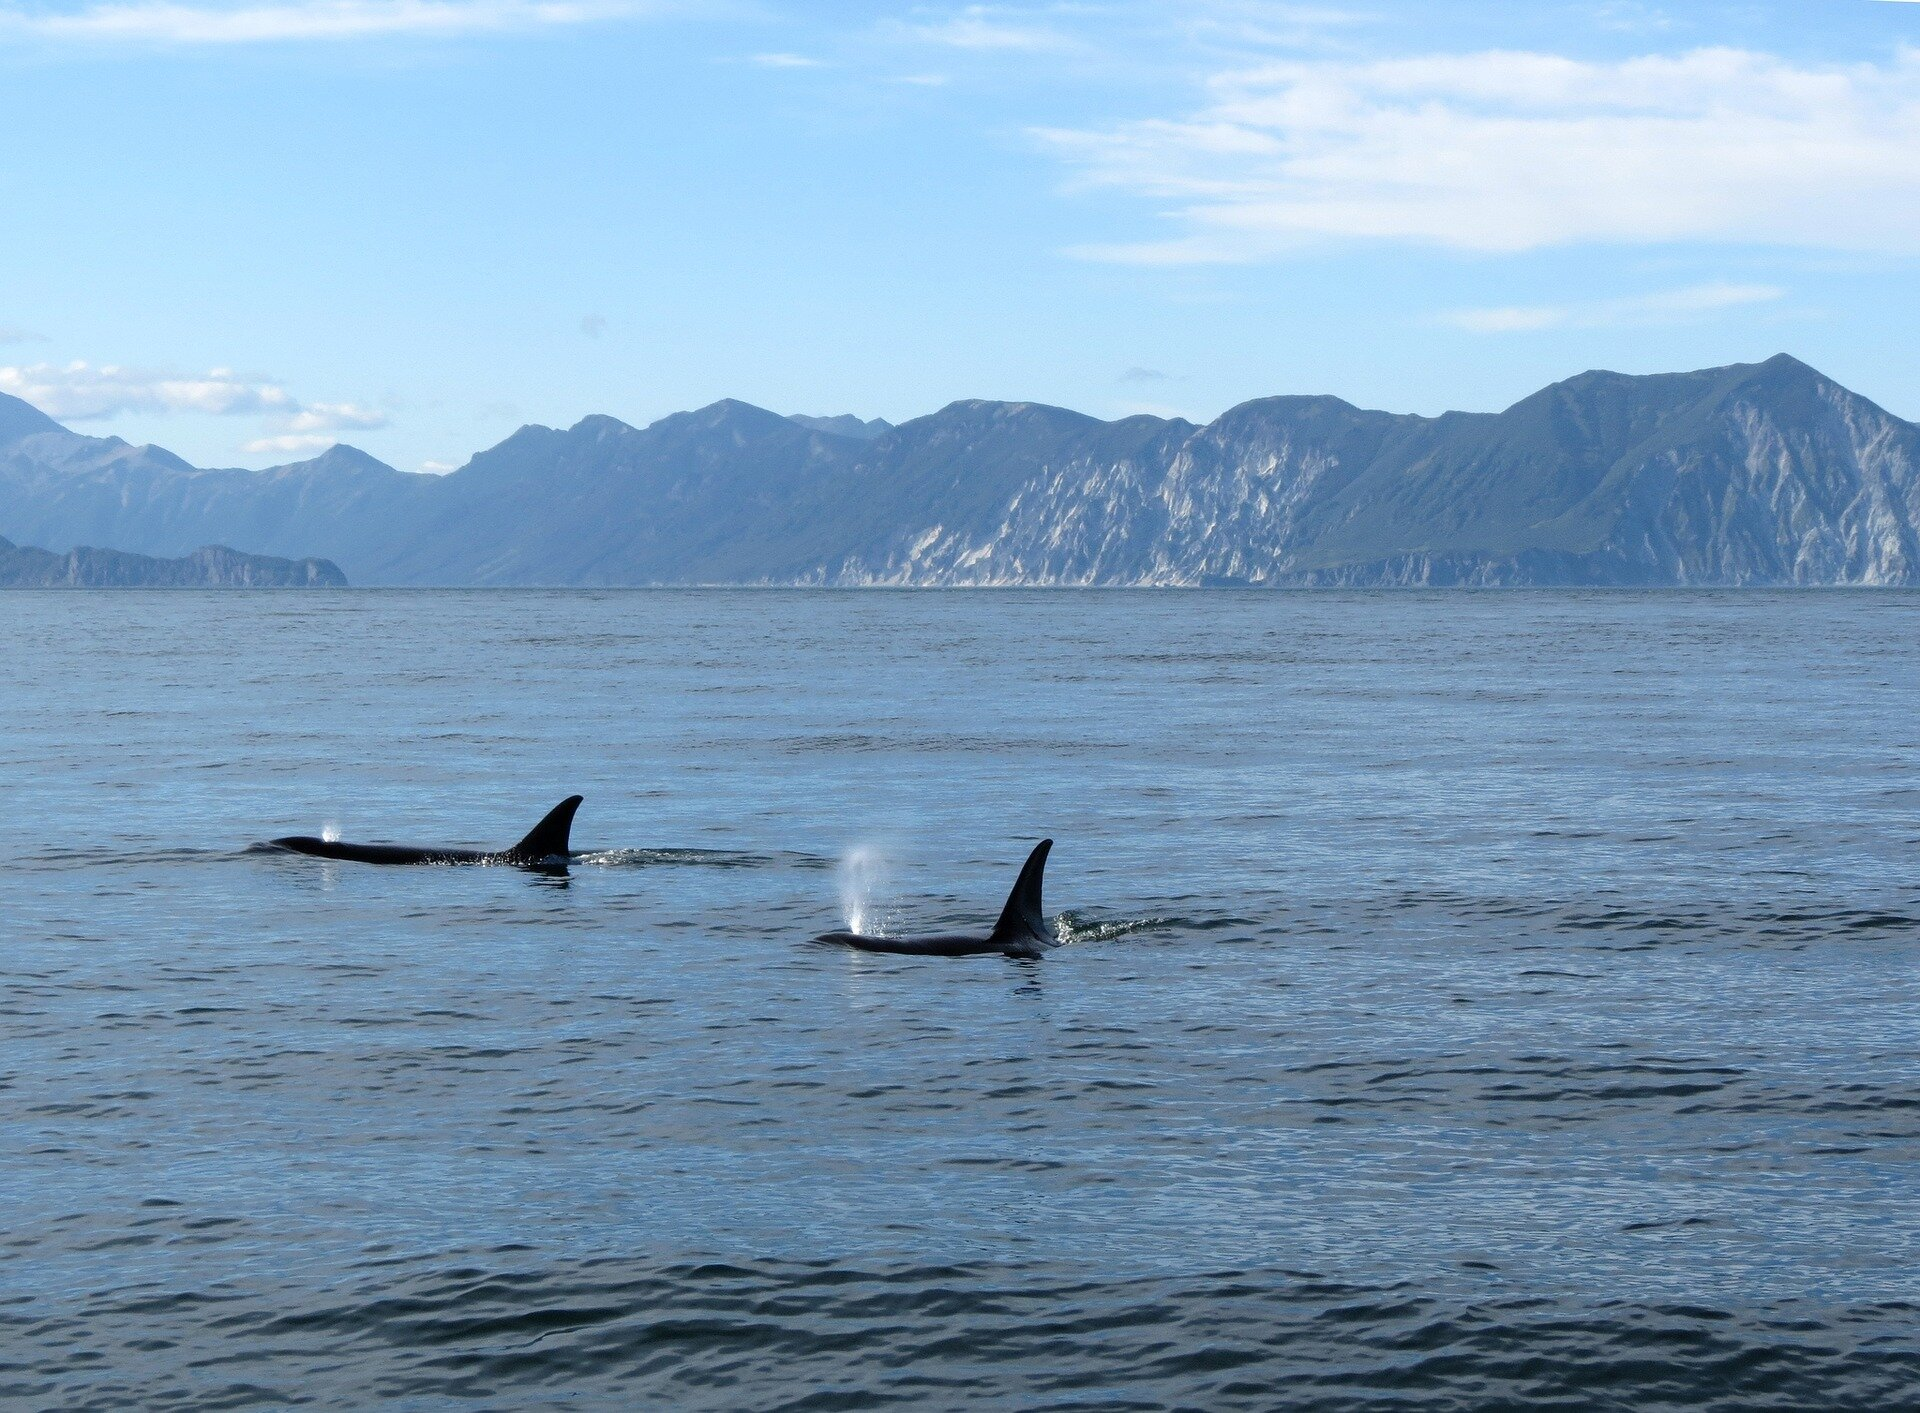 orcas swimming in water